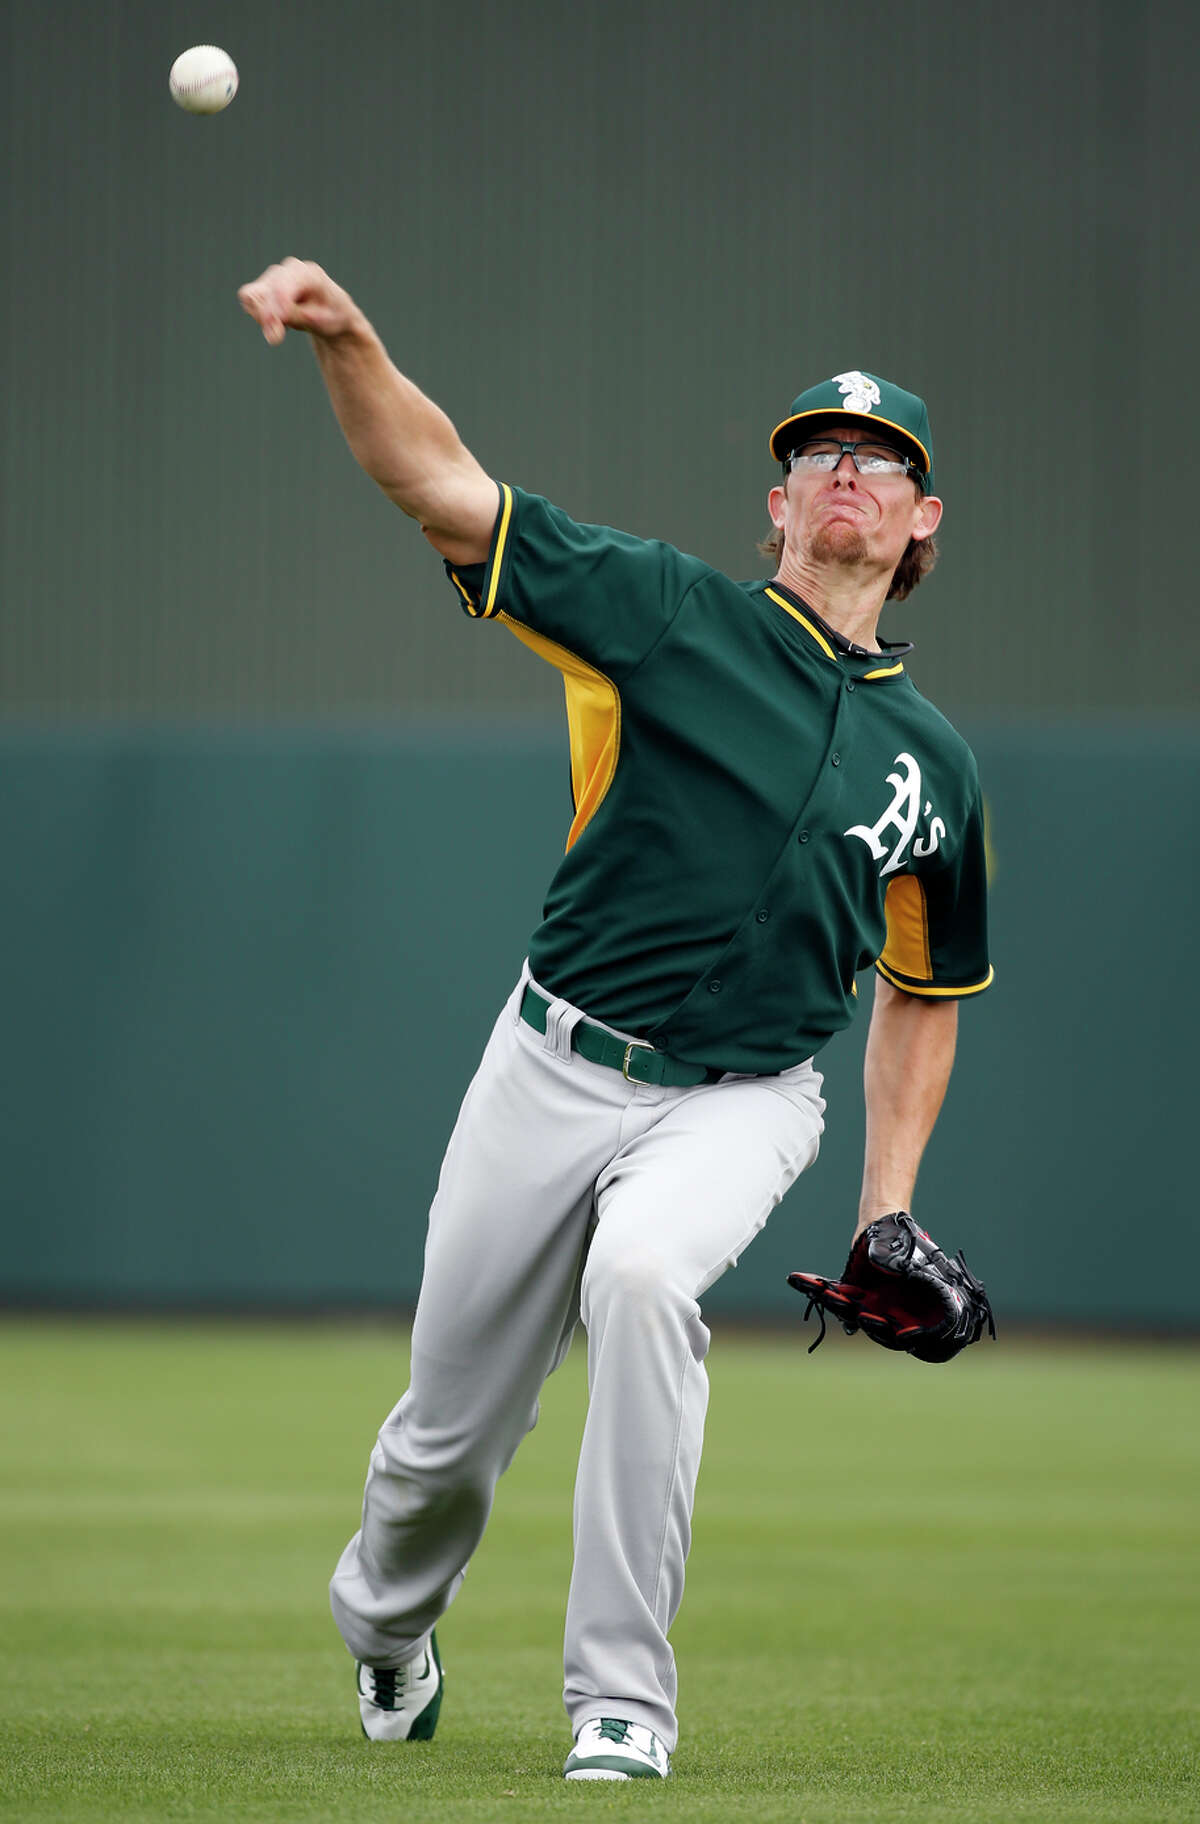 Tyler Clippard is in line for closer duties with the A's early in the season with incumbent Sean Doolittle out.